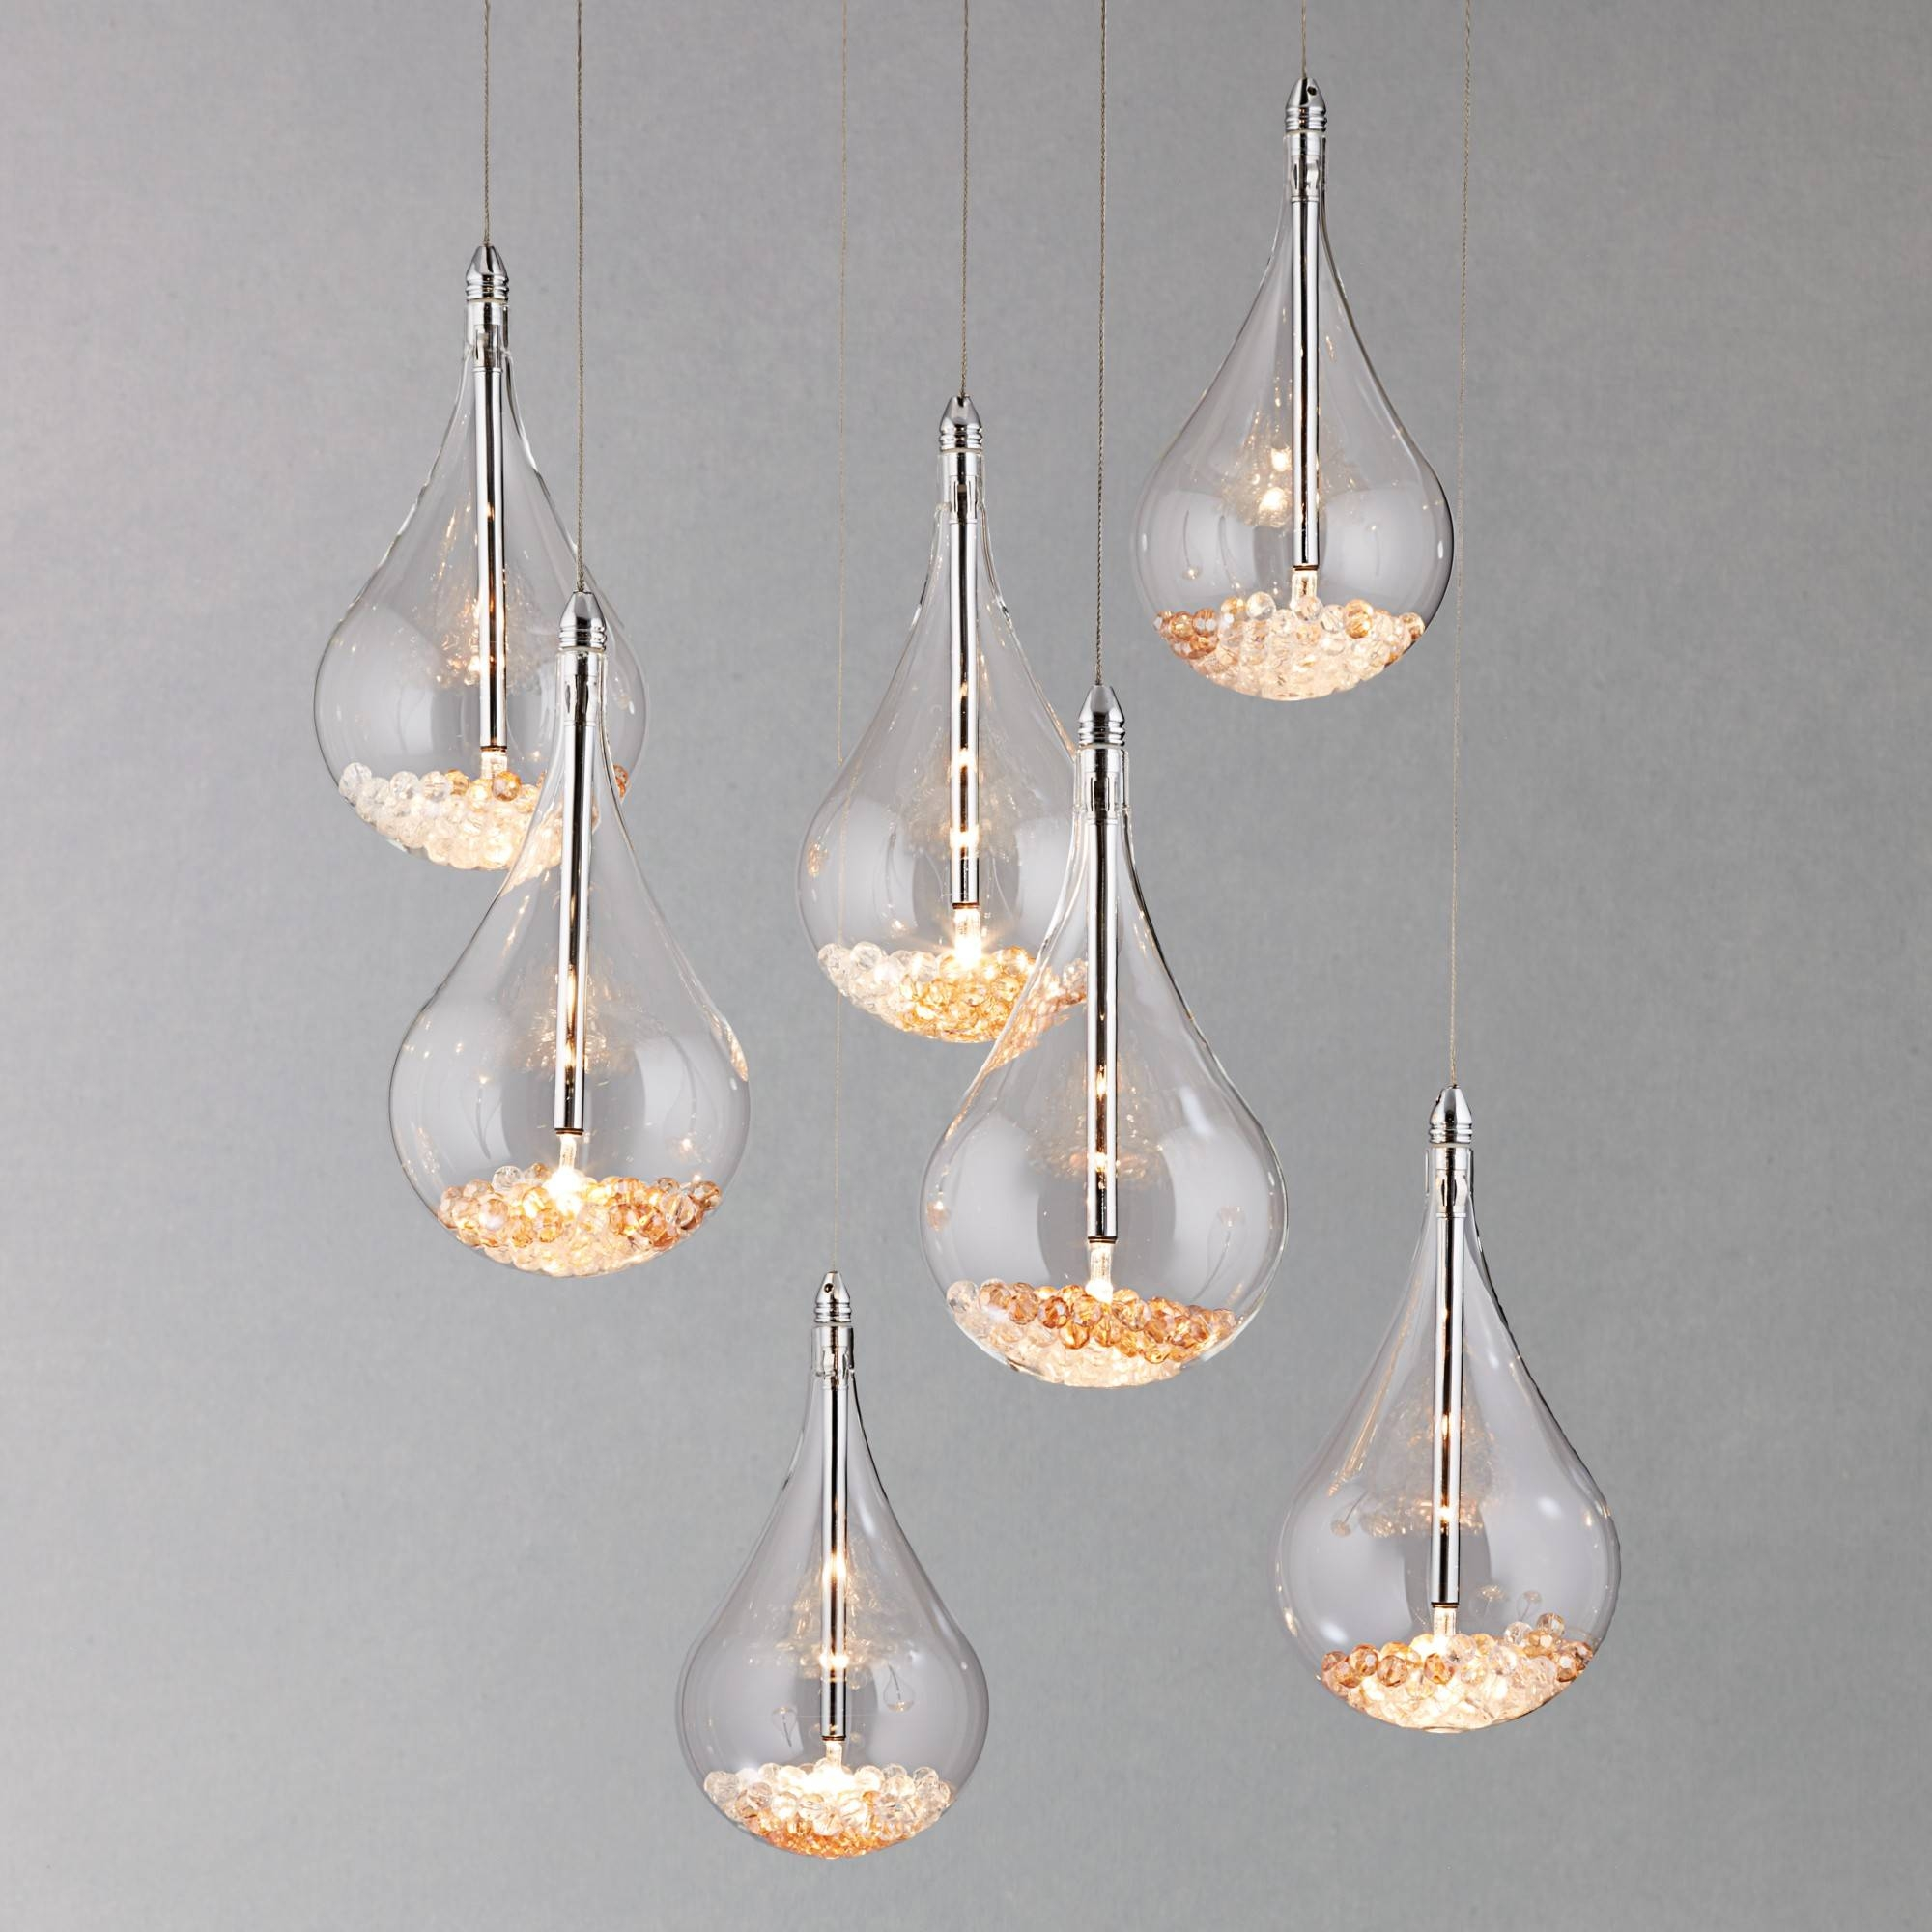 Cluster Lights – Our Pick Of The Best | Ideal Home With Regard To John Lewis Kitchen Pendant Lighting (View 9 of 15)